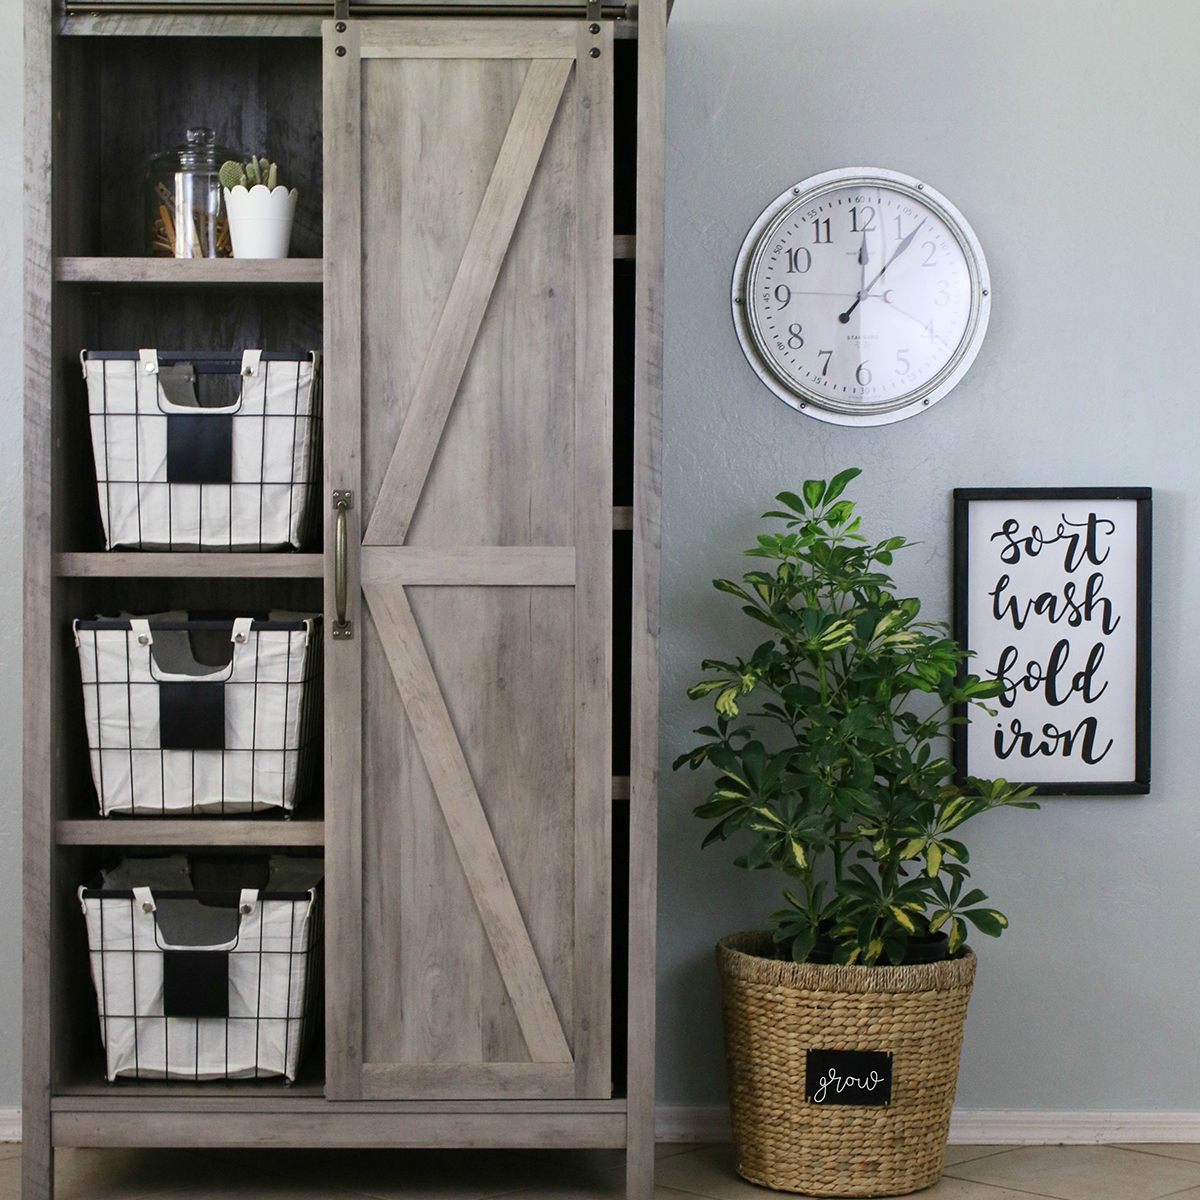 Incorporating a Round Hyacinth Twist Handle Basket and a Galvanized Wall Clock in her new-and-improved laundry room helps to add a touch of charm to the functional and stylish Modern Farmhouse Storage Cabinet. photo